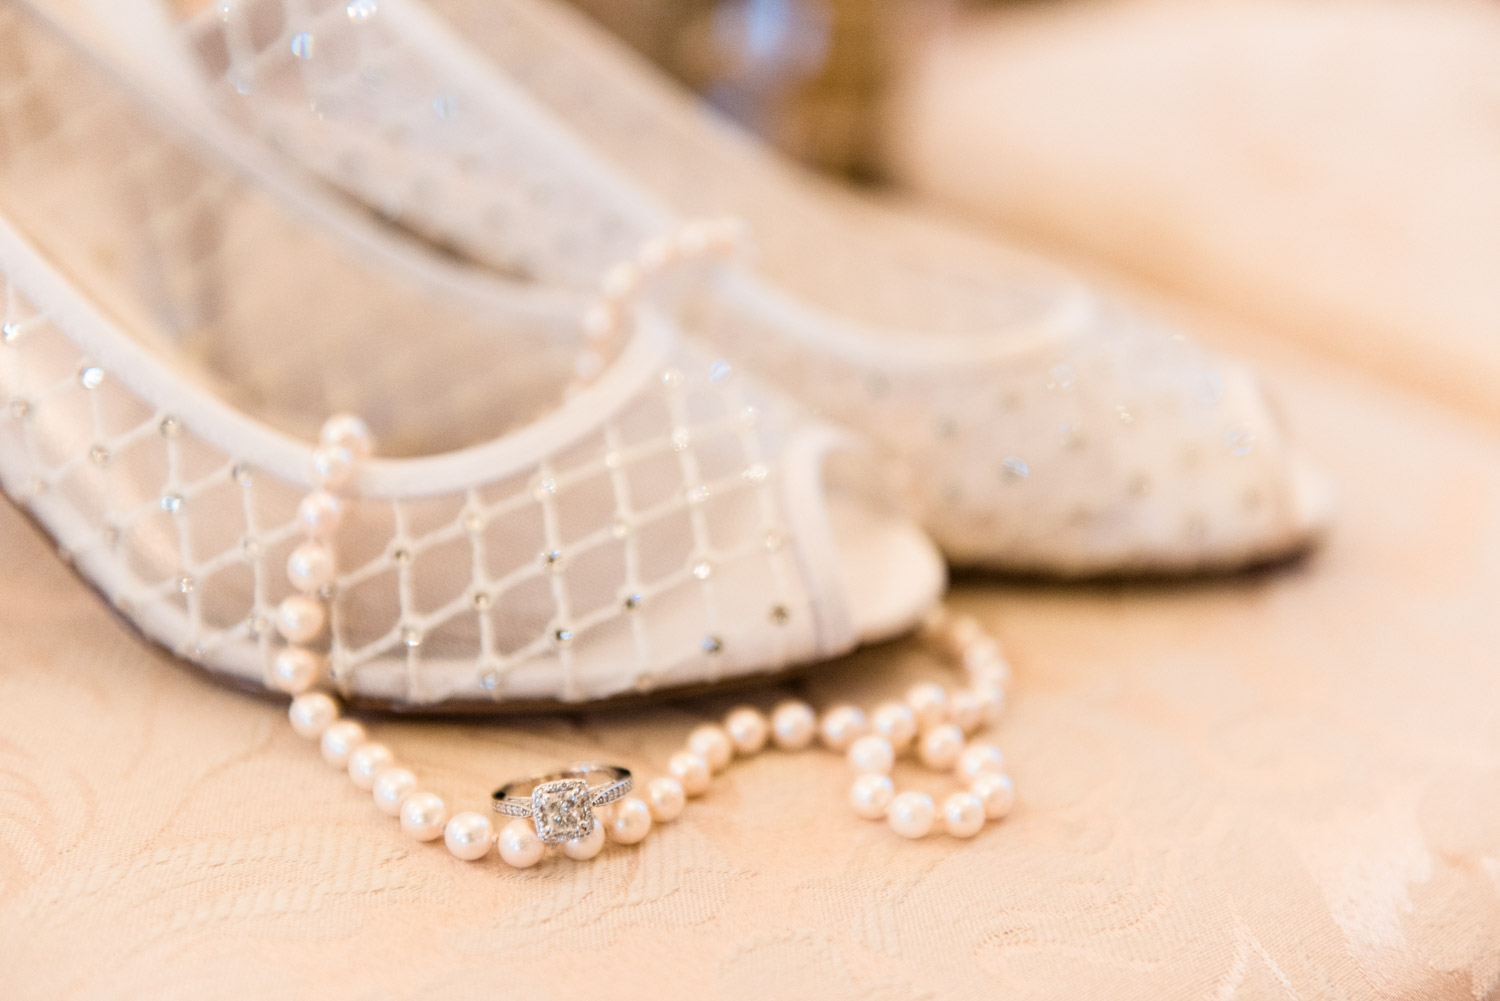 Bride's Wedding Day Details | Boston Wedding and Portrait Photography for the Openhearted | Lorna Stell Photo